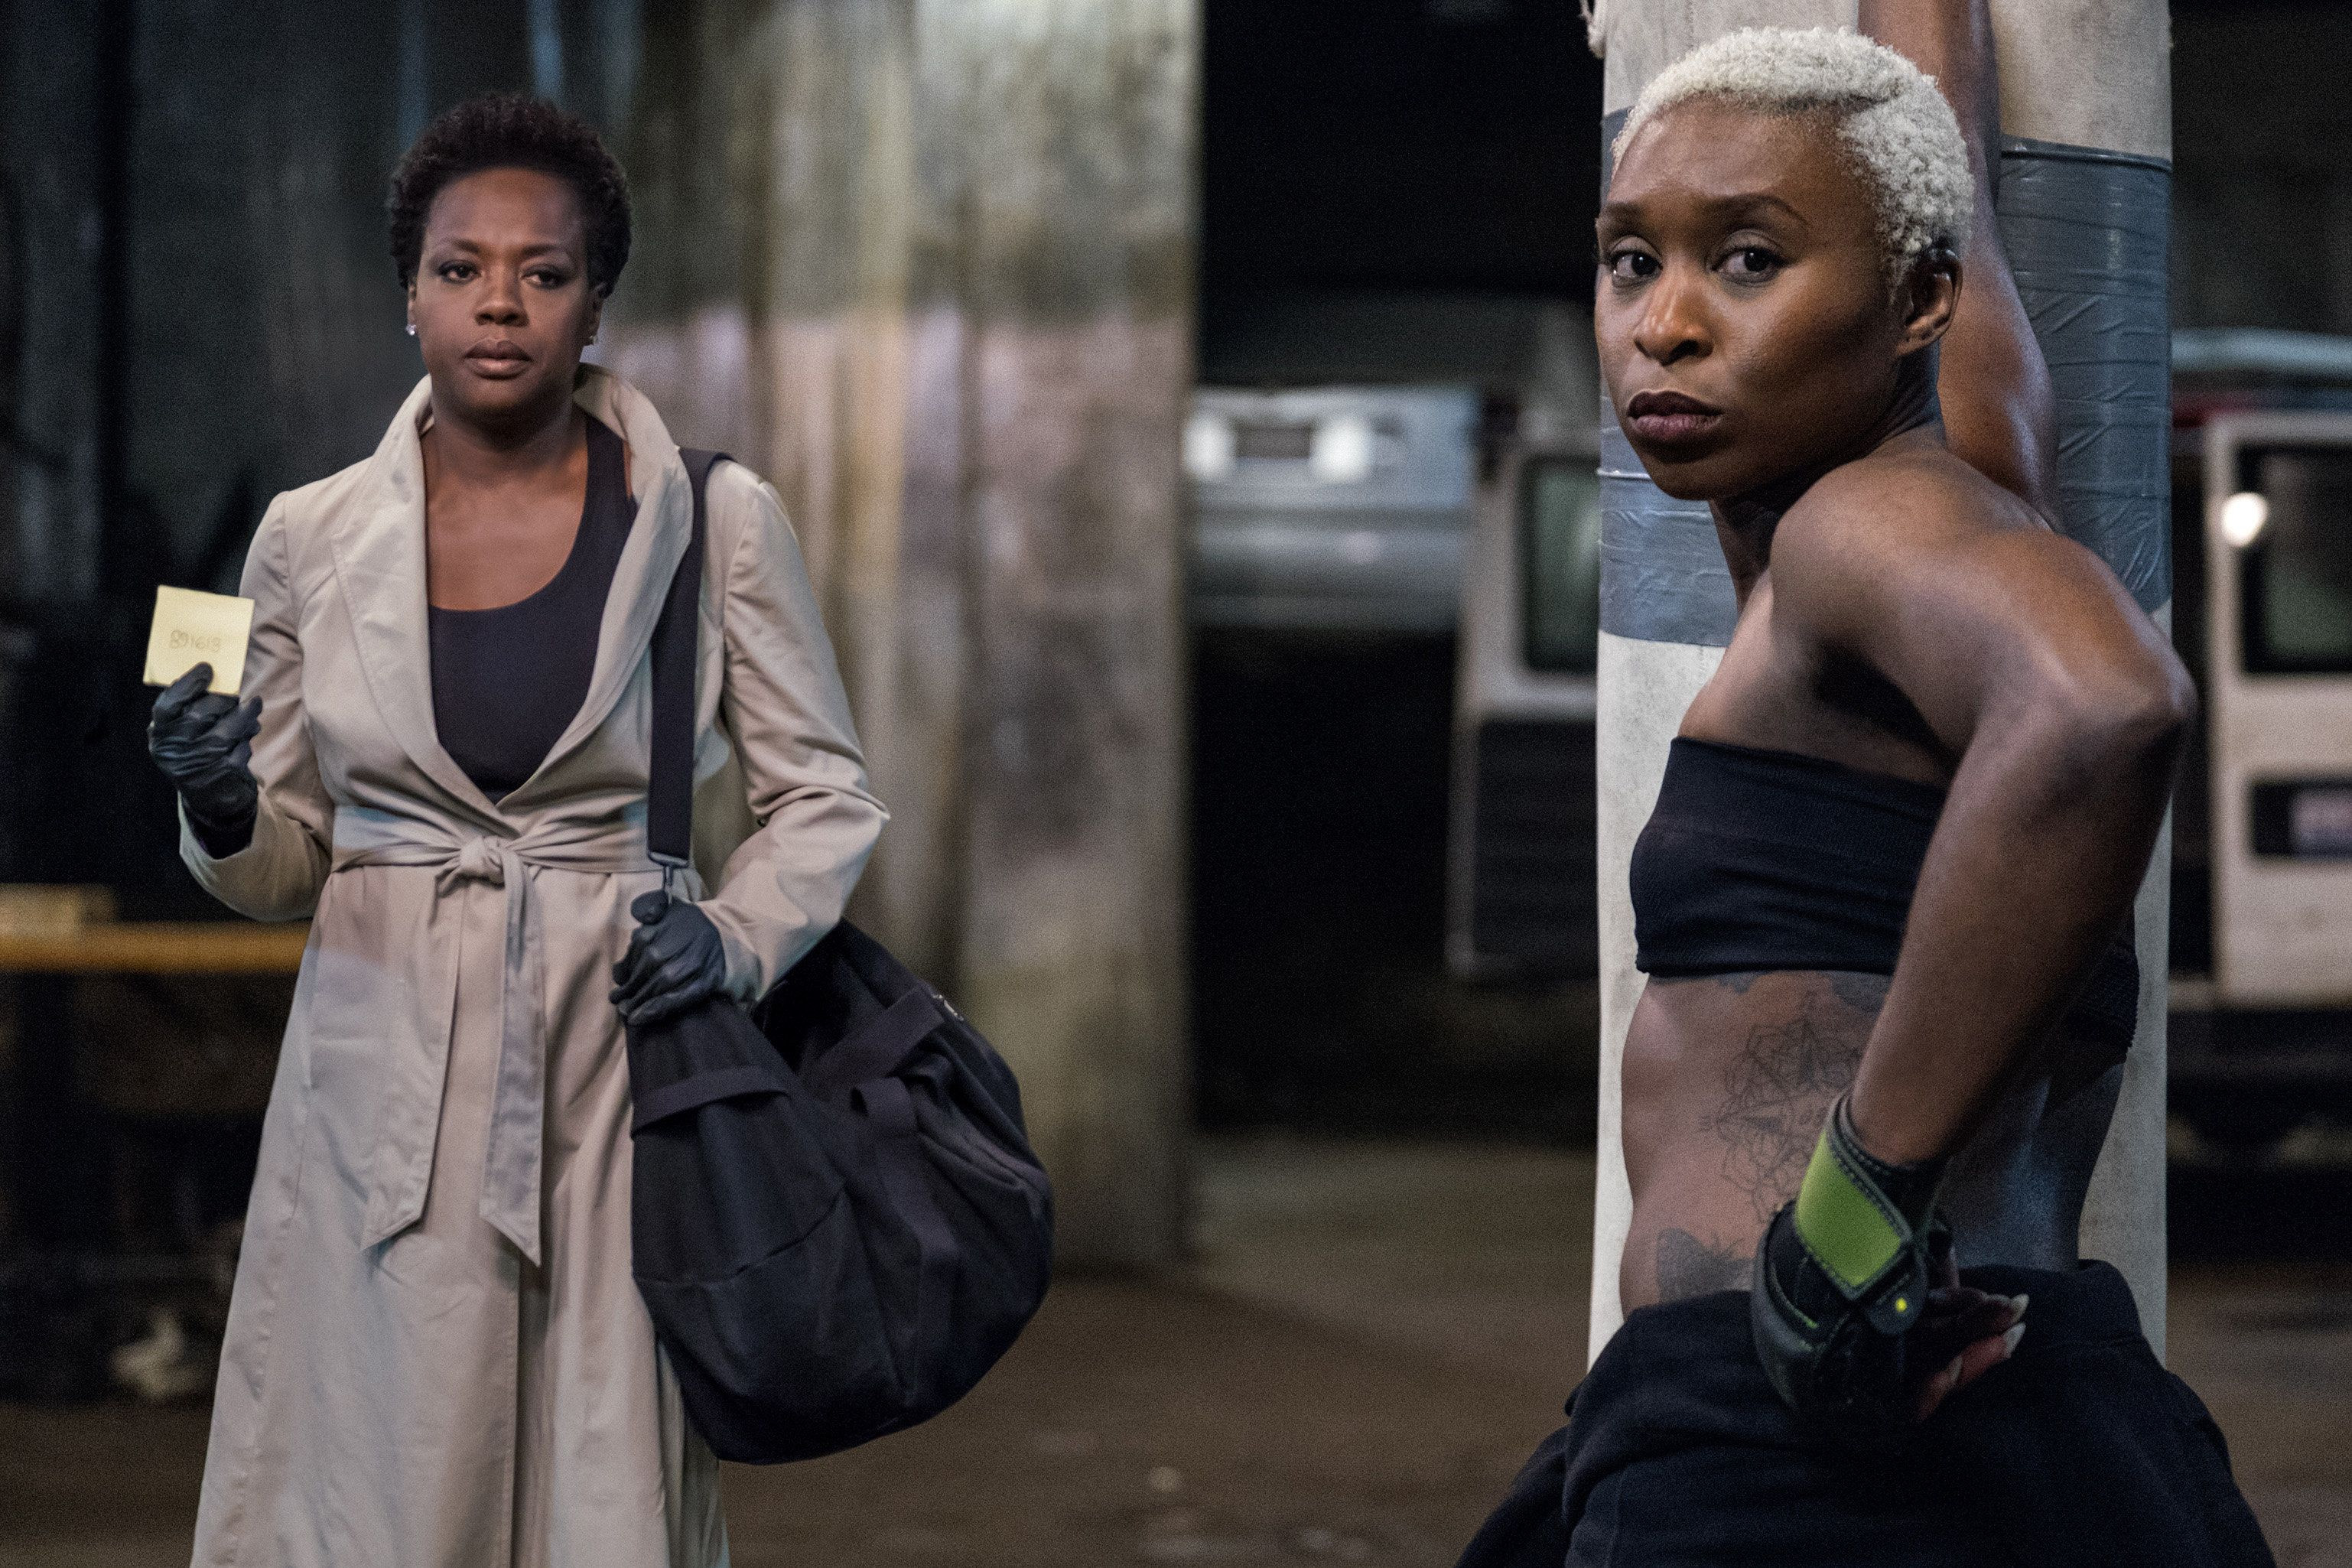 """Adapted from a 1983 British miniseries, """"Widows"""" is a whole lot of movie: a heist thriller, a screed about political corruption, a portrait of domestic grief and a girl-power escapade led by the mighty Viola Davis. It works through and through, puzzling the pieces together so they add up to an electrifying whole that speaks to a contemporary American condition. Steve McQueen maintains the art-house sensibilities he displayed in """"Shame"""" and """"12 Years a Slave"""" but still shows us what a modern blockbuster should look like. Too bad so few people paid attention."""